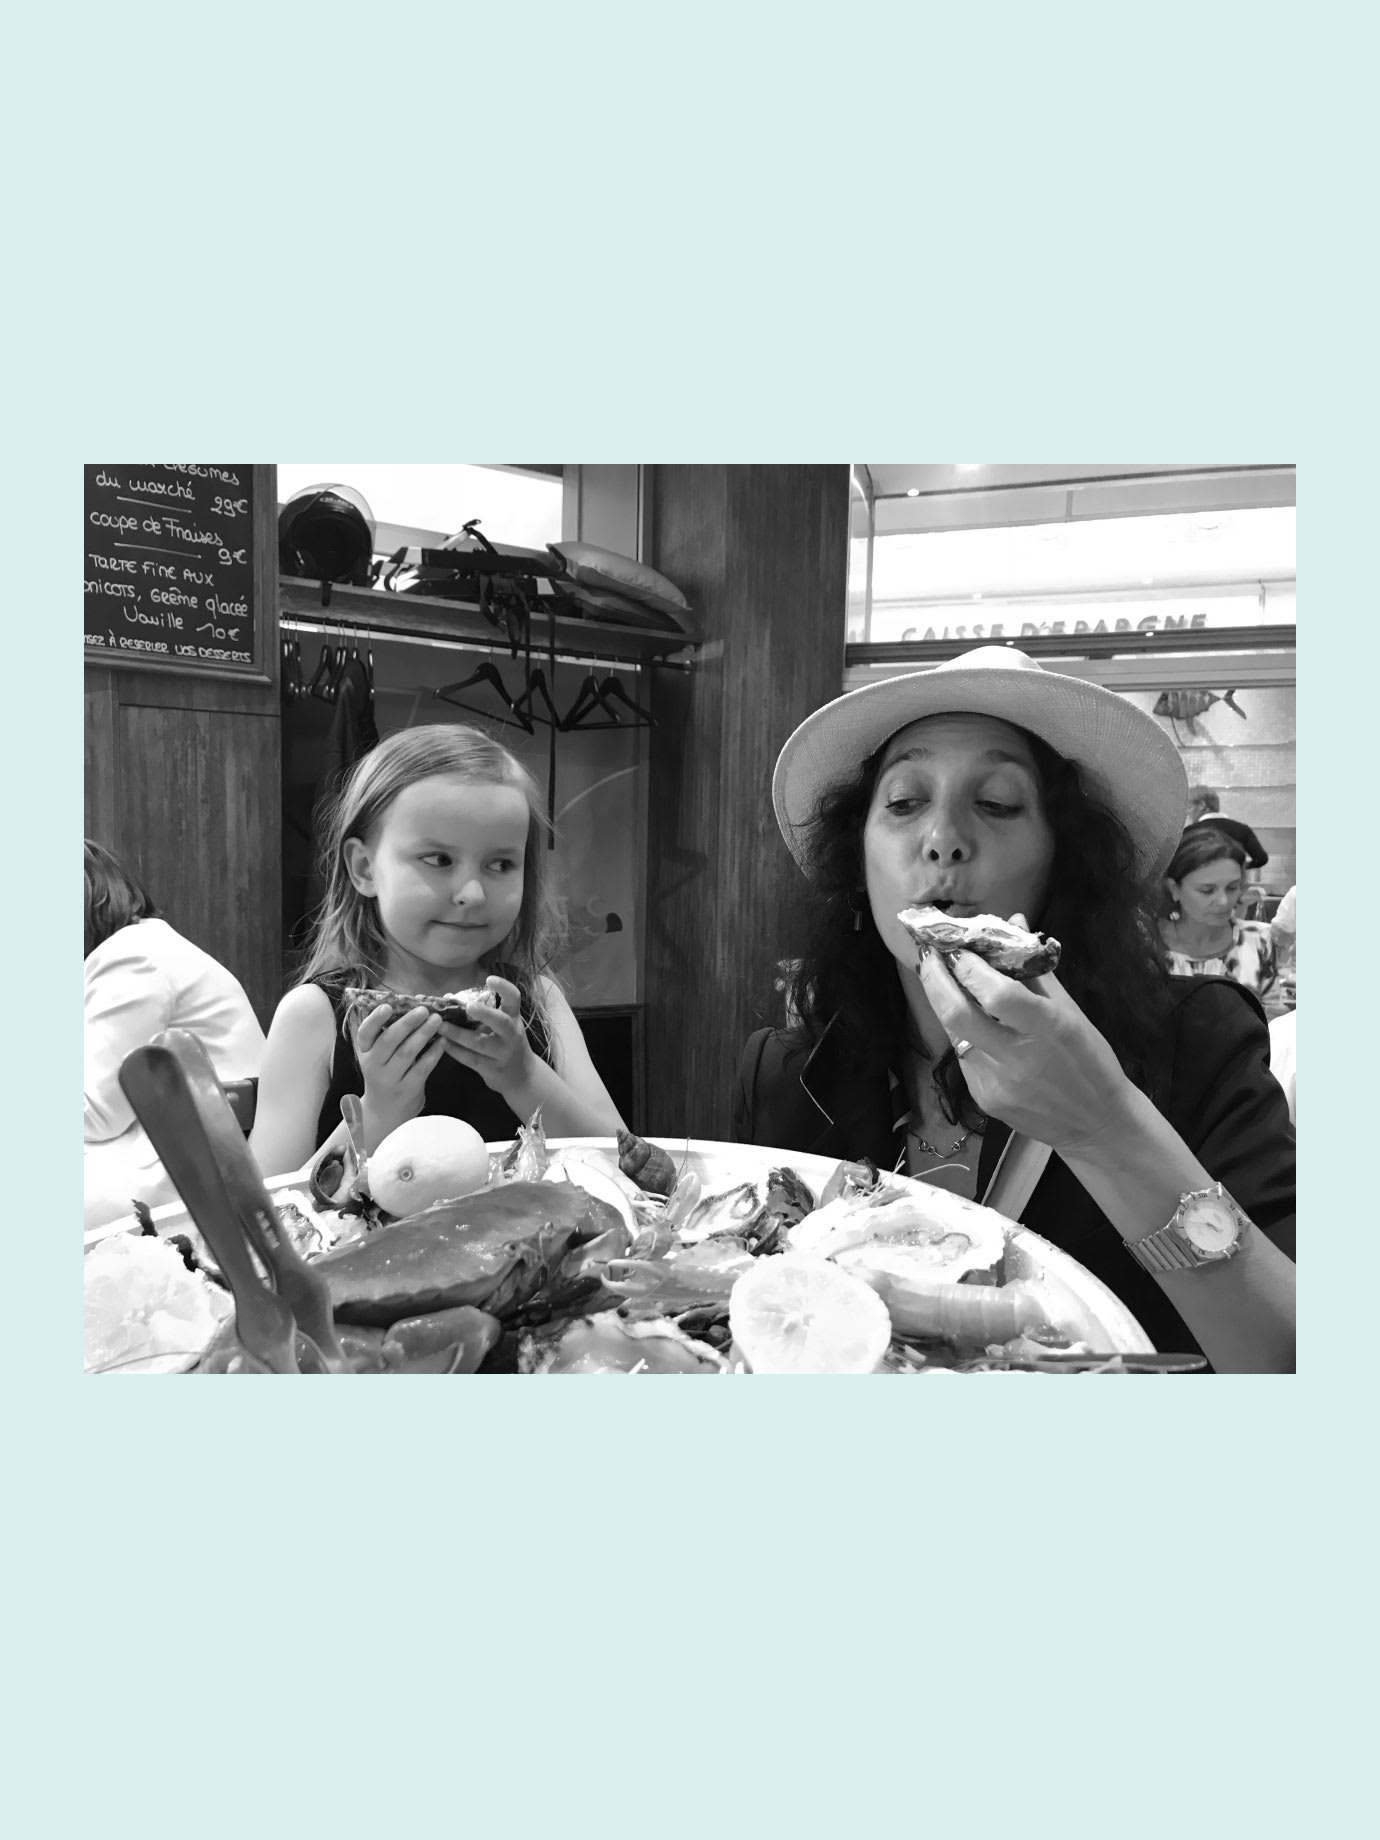 A woman and a young girl eating oysters in a restaurant.